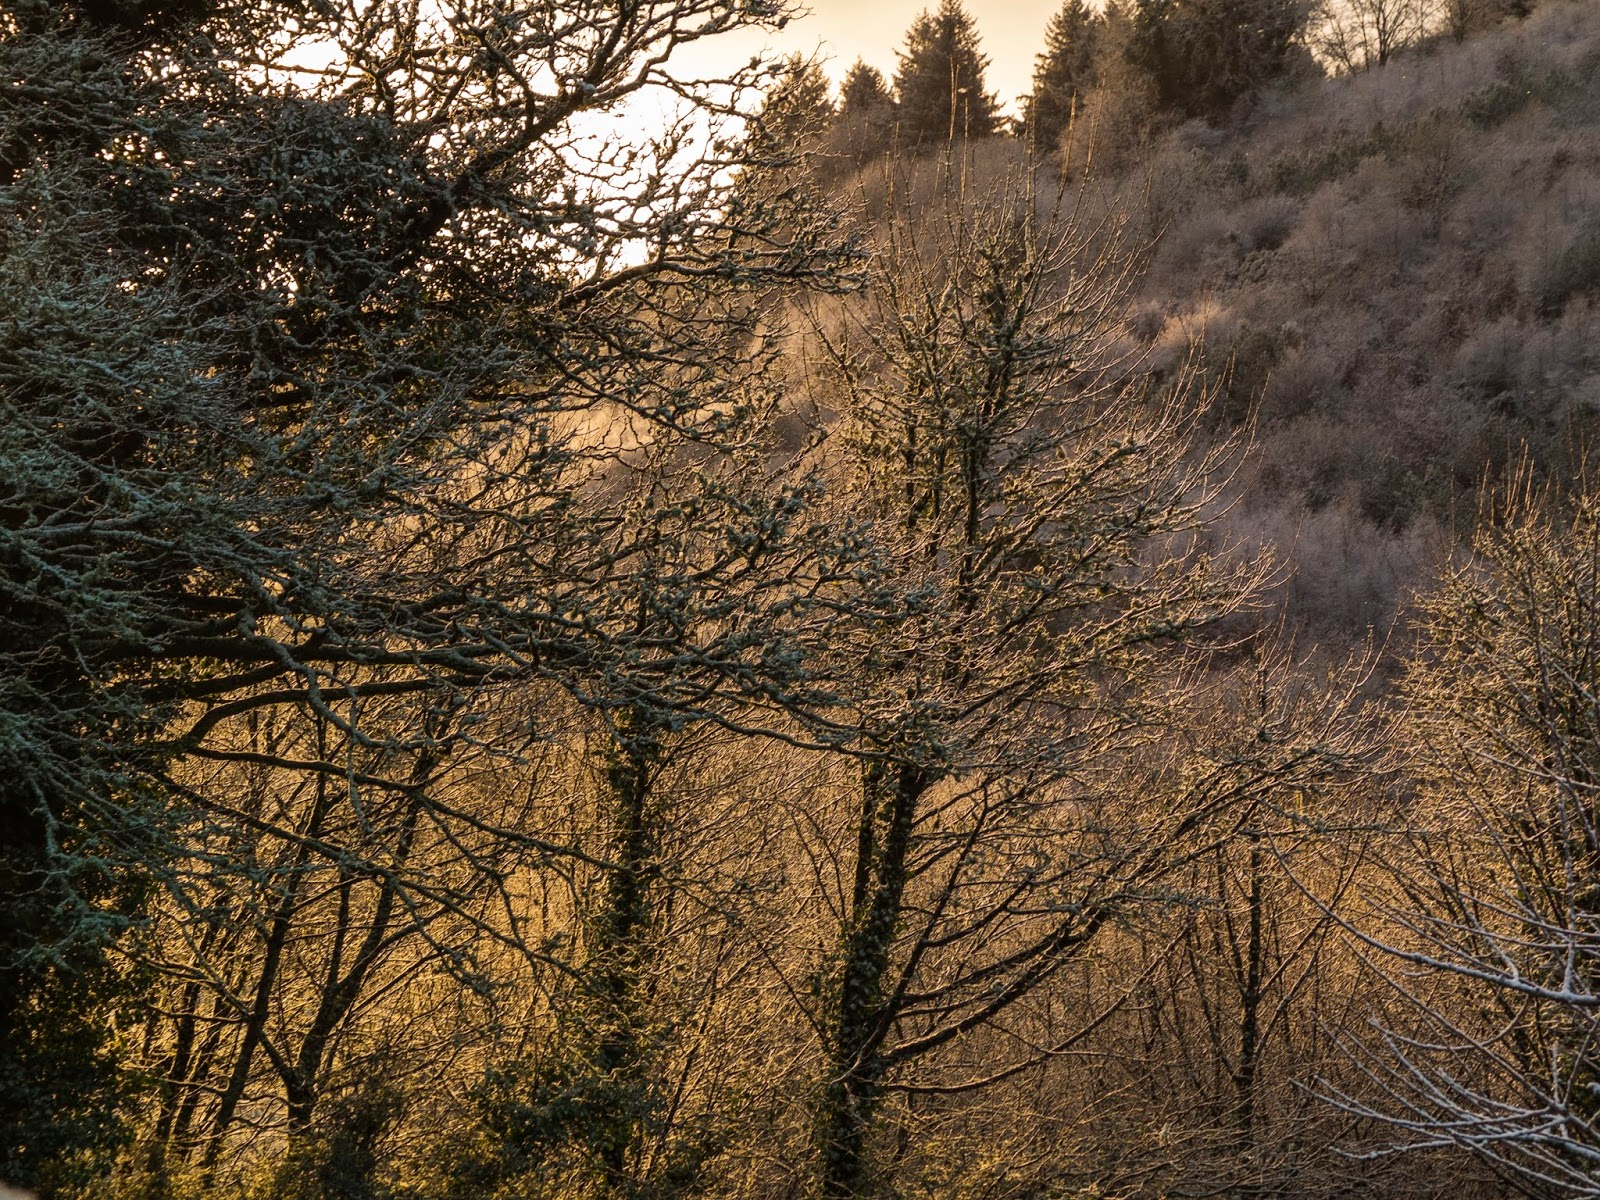 Sun light shining through bare trees in a valley in North County Cork.